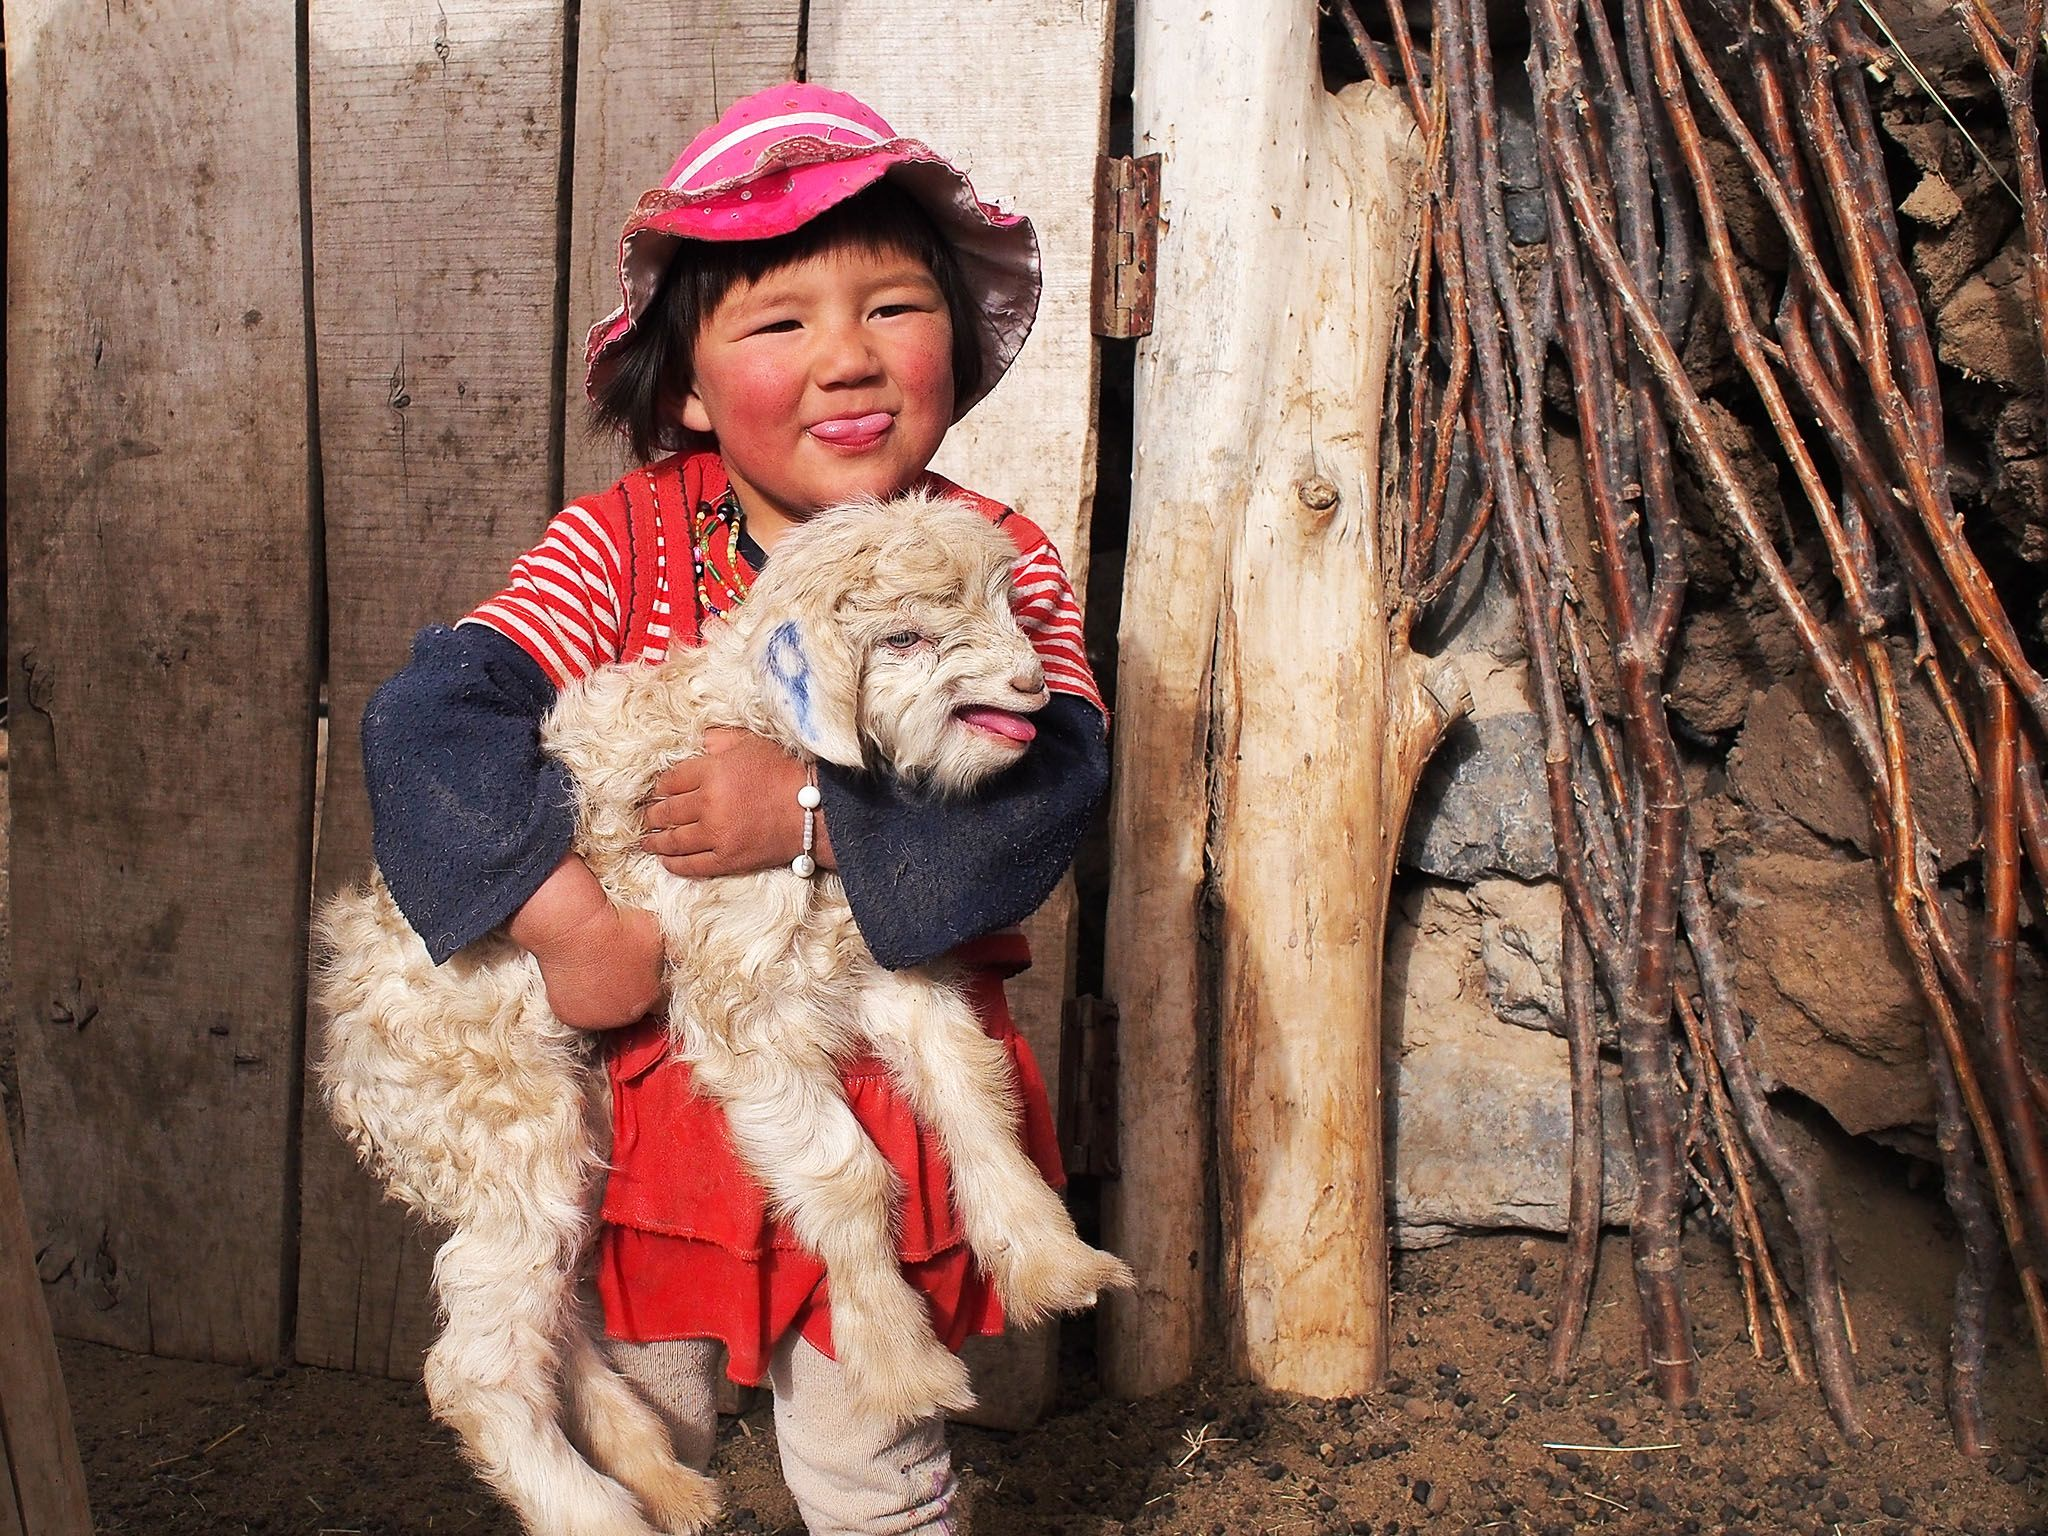 Macan's granddaughter playing with a lamb in the pen. Macan, a master falconer, teaches his son... [Photo of the day - August 2015]